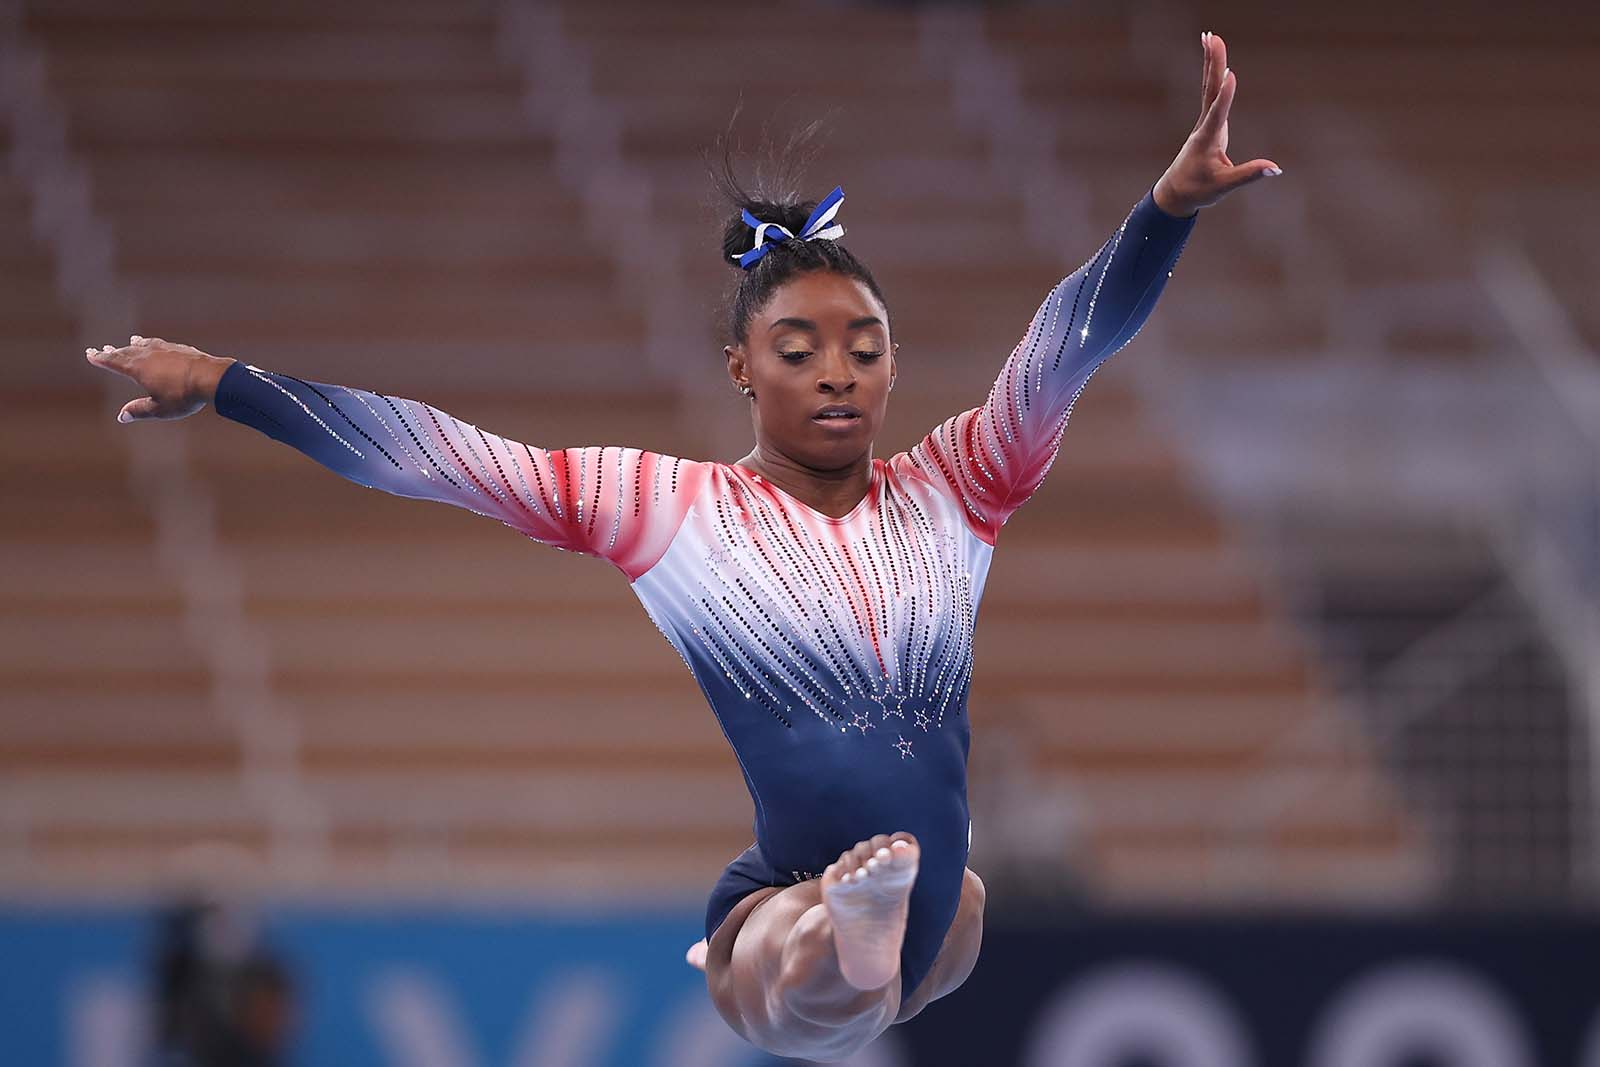 Simone Biles competes in the women's balance beam final on August 3.